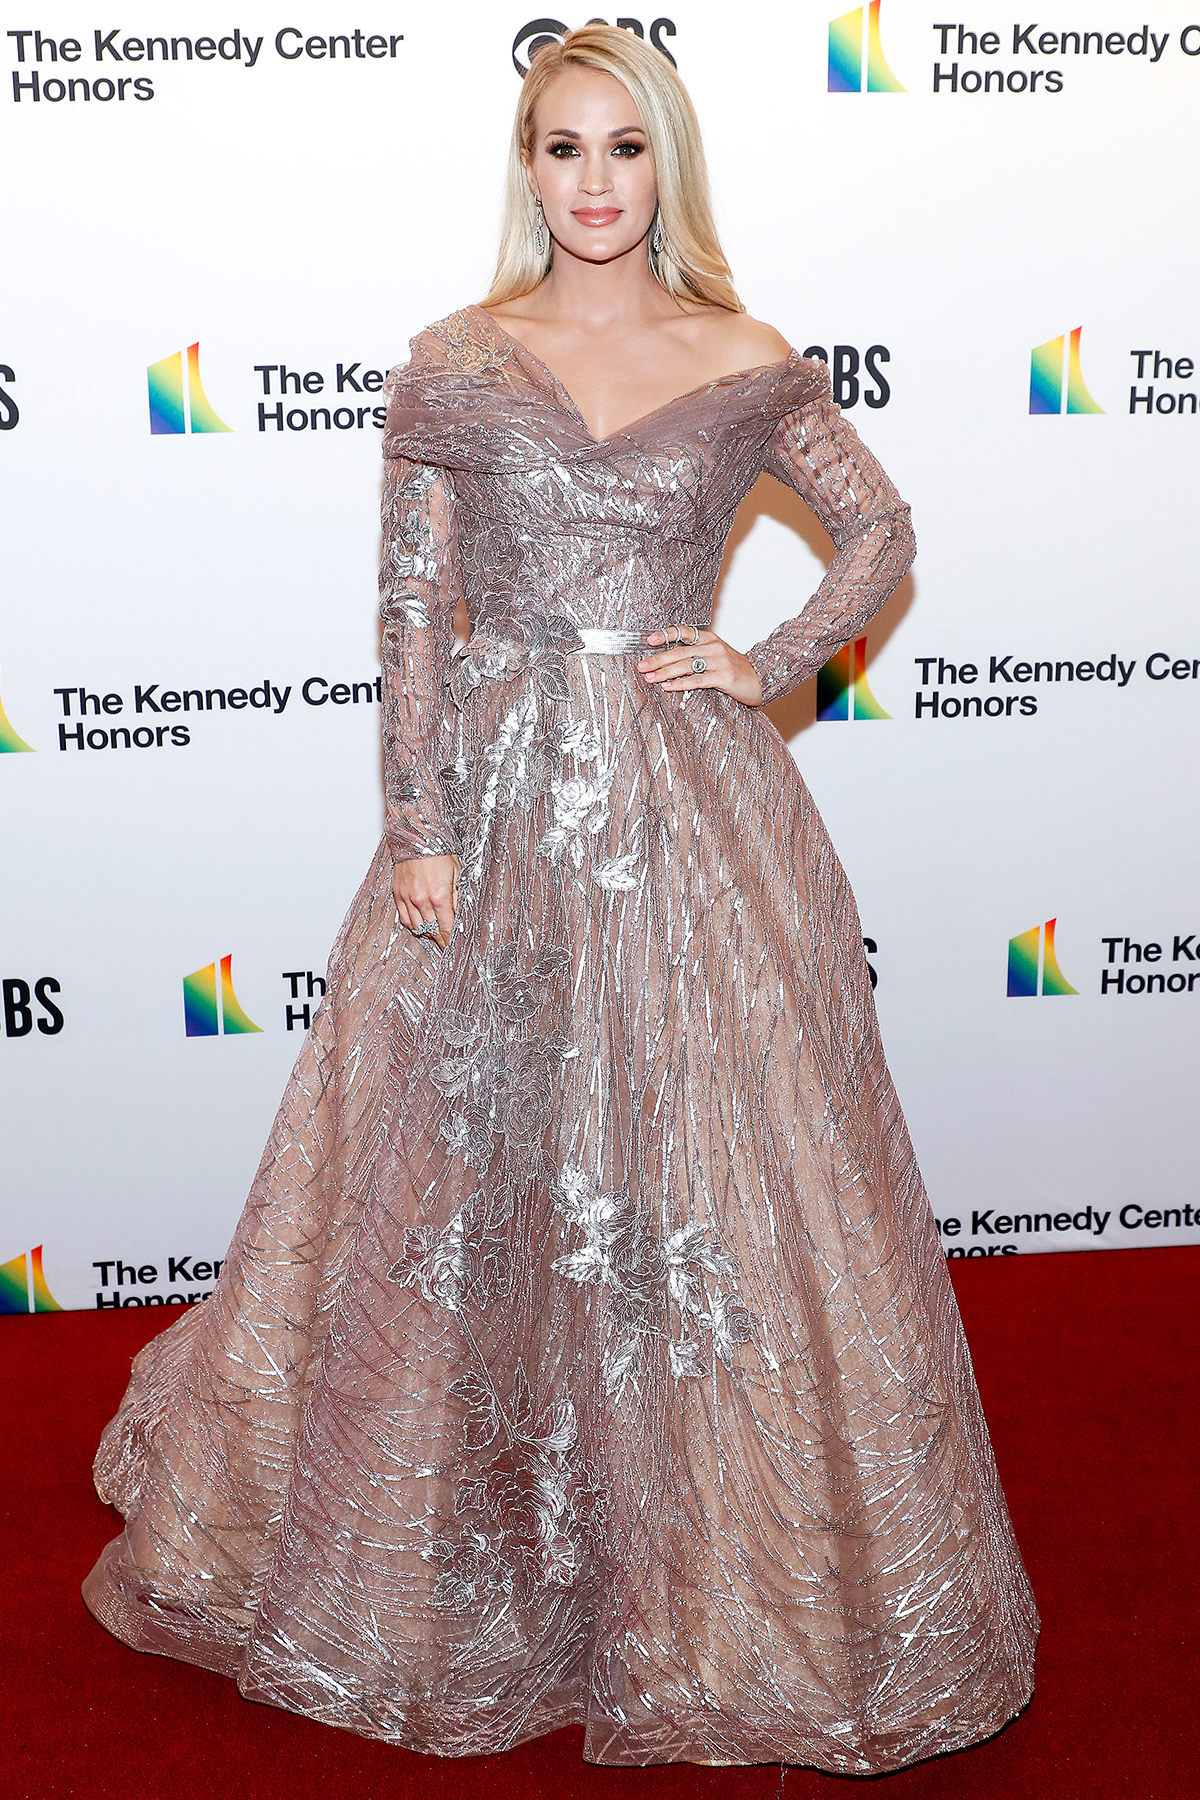 Carrie Underwood attends the 42nd Annual Kennedy Center Honors Kennedy Center on December 08, 2019 in Washington, DC.